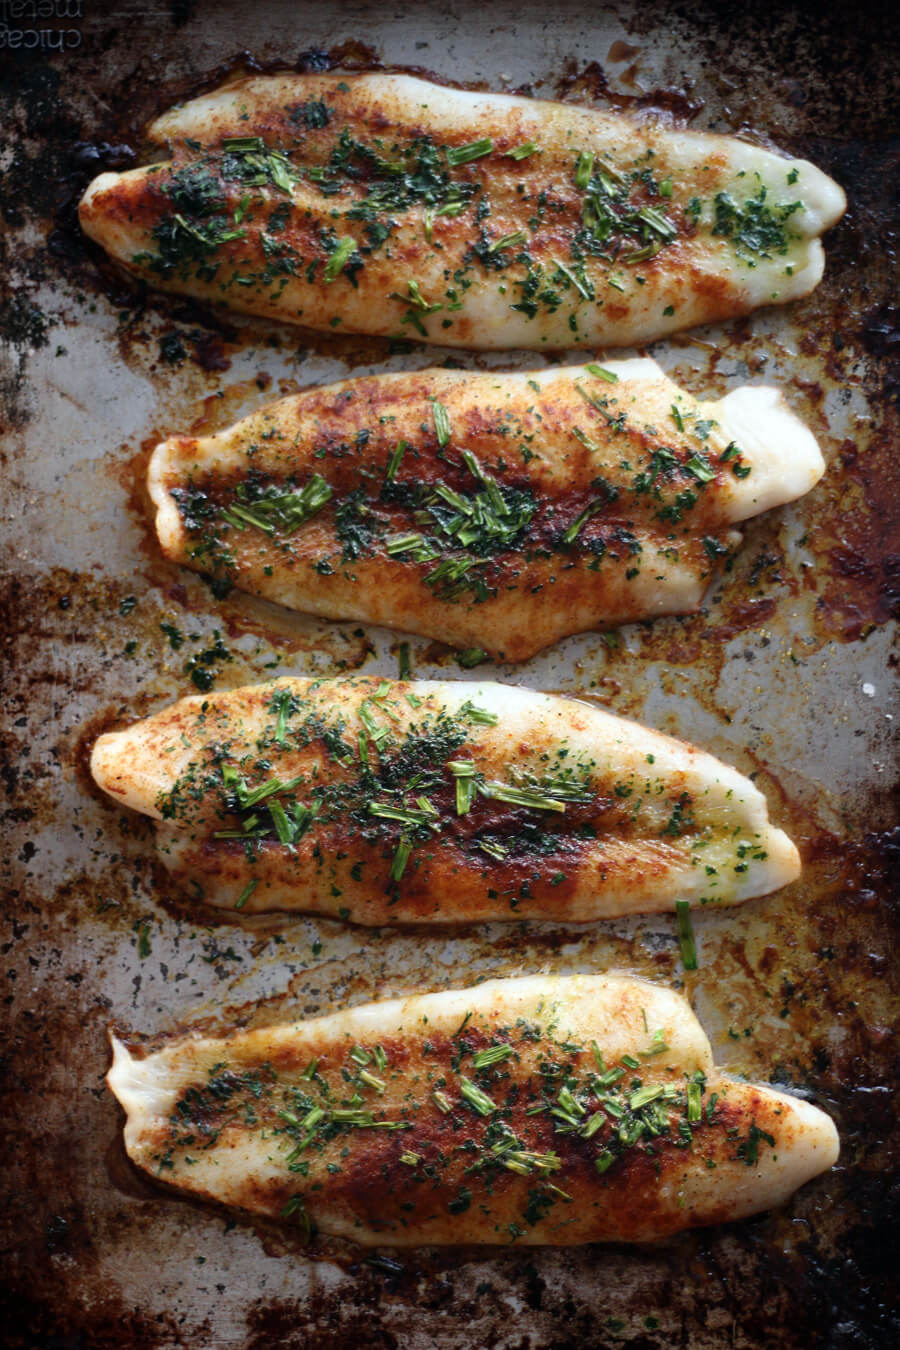 A baking sheet of baked catfish, seasoned with paprika, fresh parsley and chives